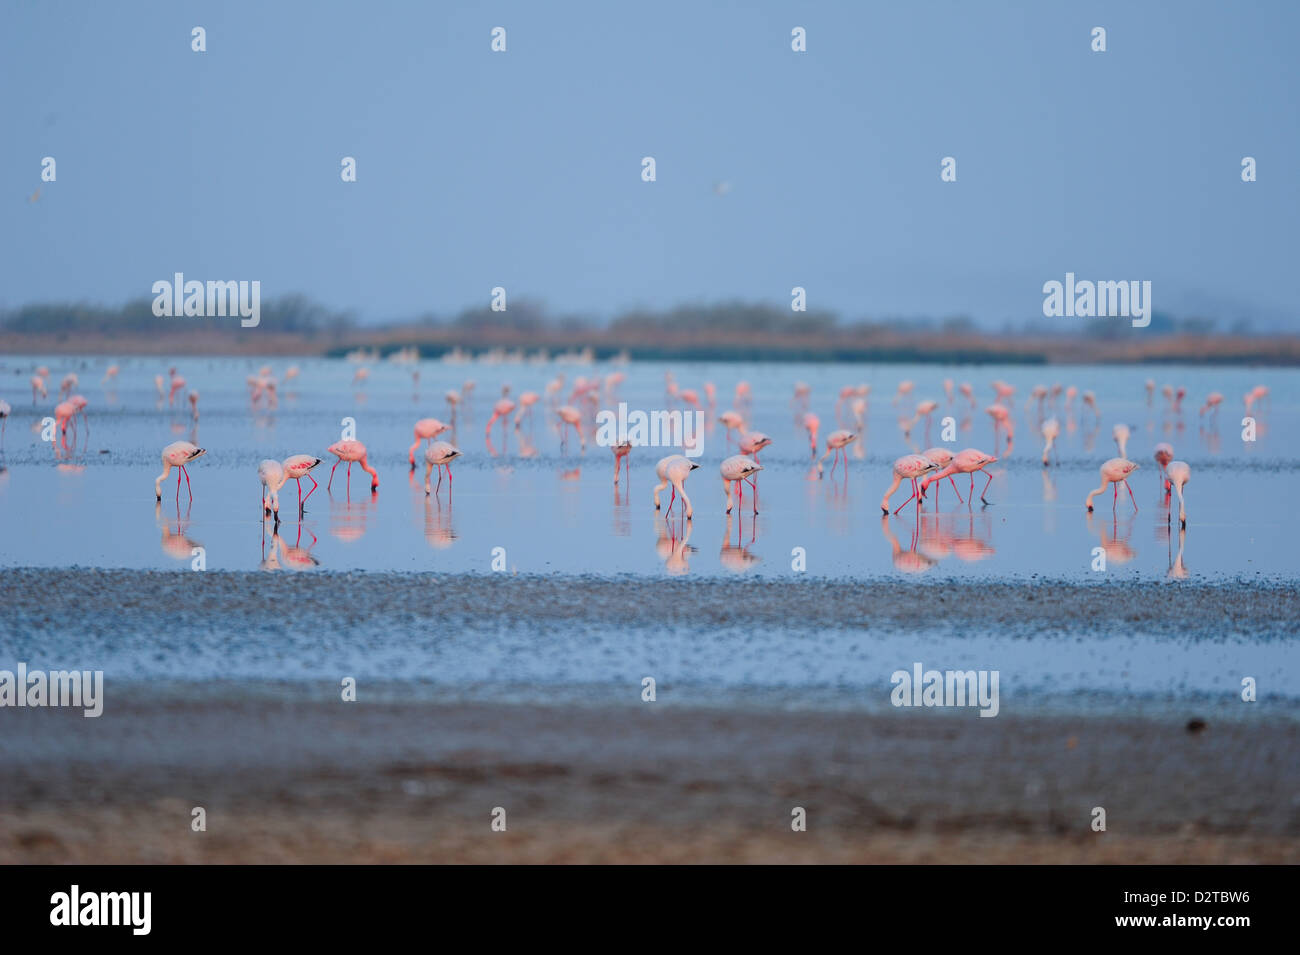 Flamingos feed on the brackish water in Little Rann of Kutch, Gujarat, India, Asia - Stock Image